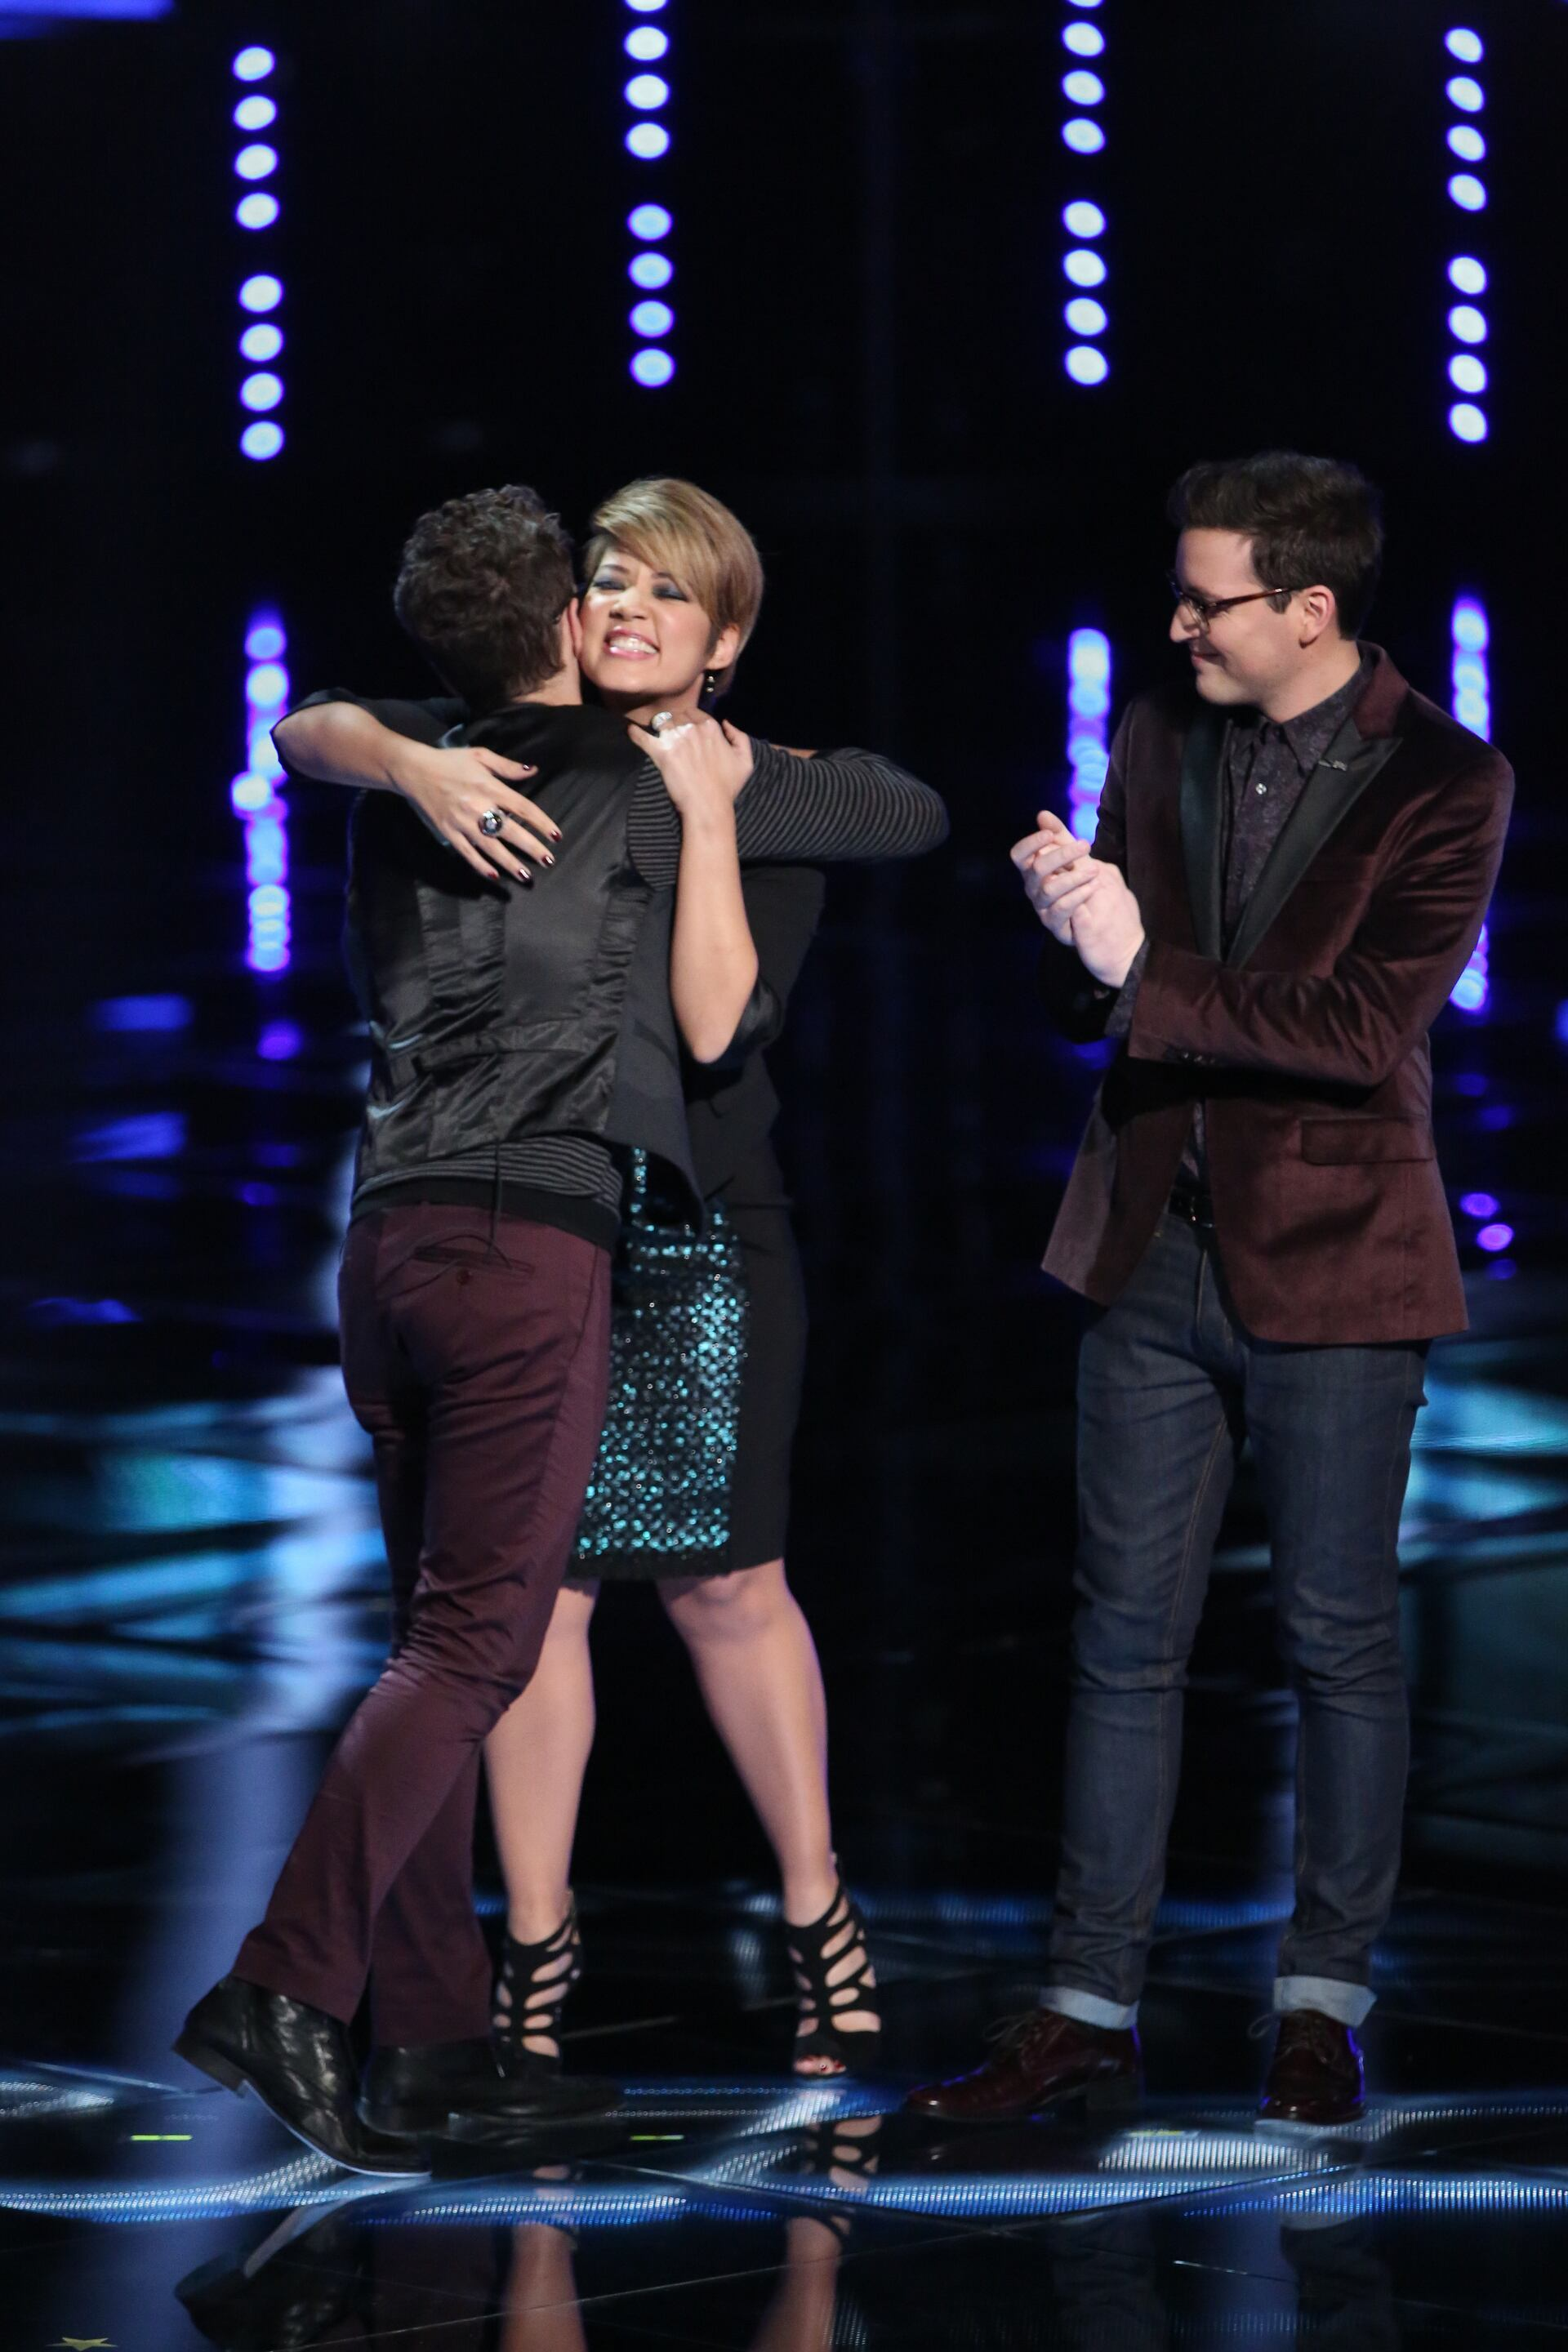 """THE VOICE -- """"Live Show"""" Episode 516B -- Pictured: (l-r) Will Champlin, Tessanne Chin, James Wolpert -- (Photo by: Tyler Golden/NBC)"""